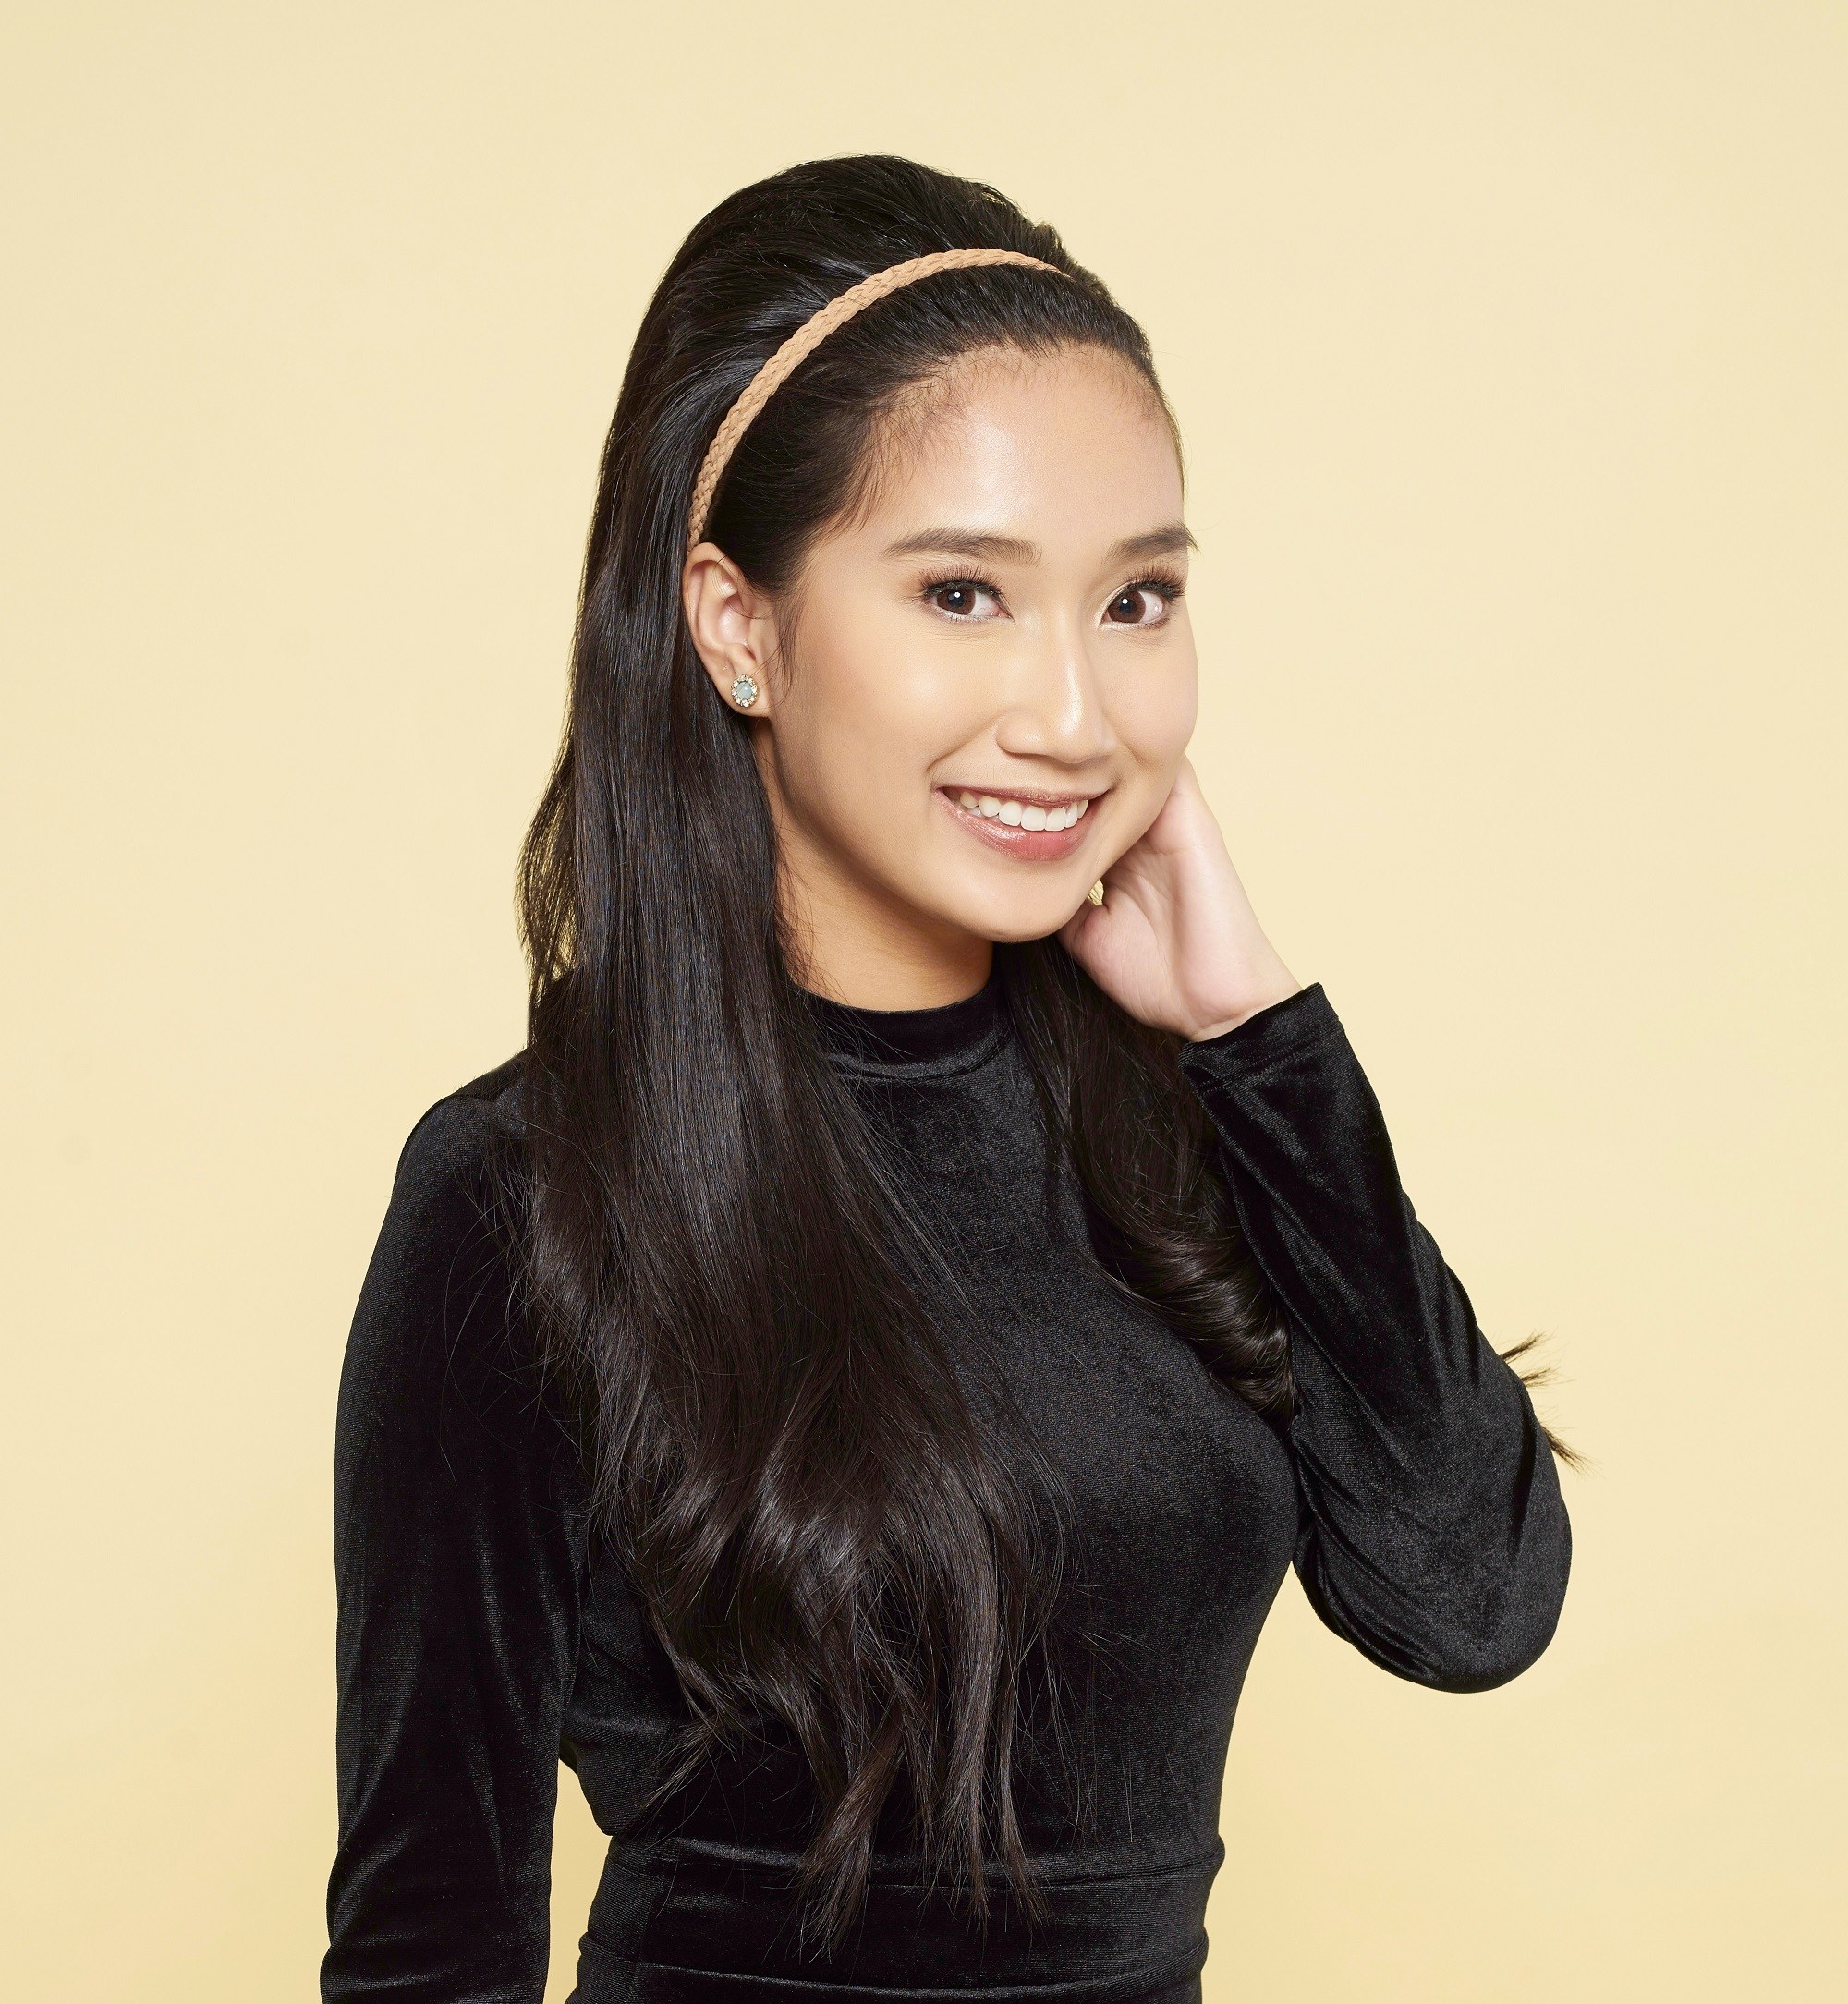 Christmas party hairstyles: Asian woman with long black hair in bouffant hairstyle wearing a black long-sleeved dress